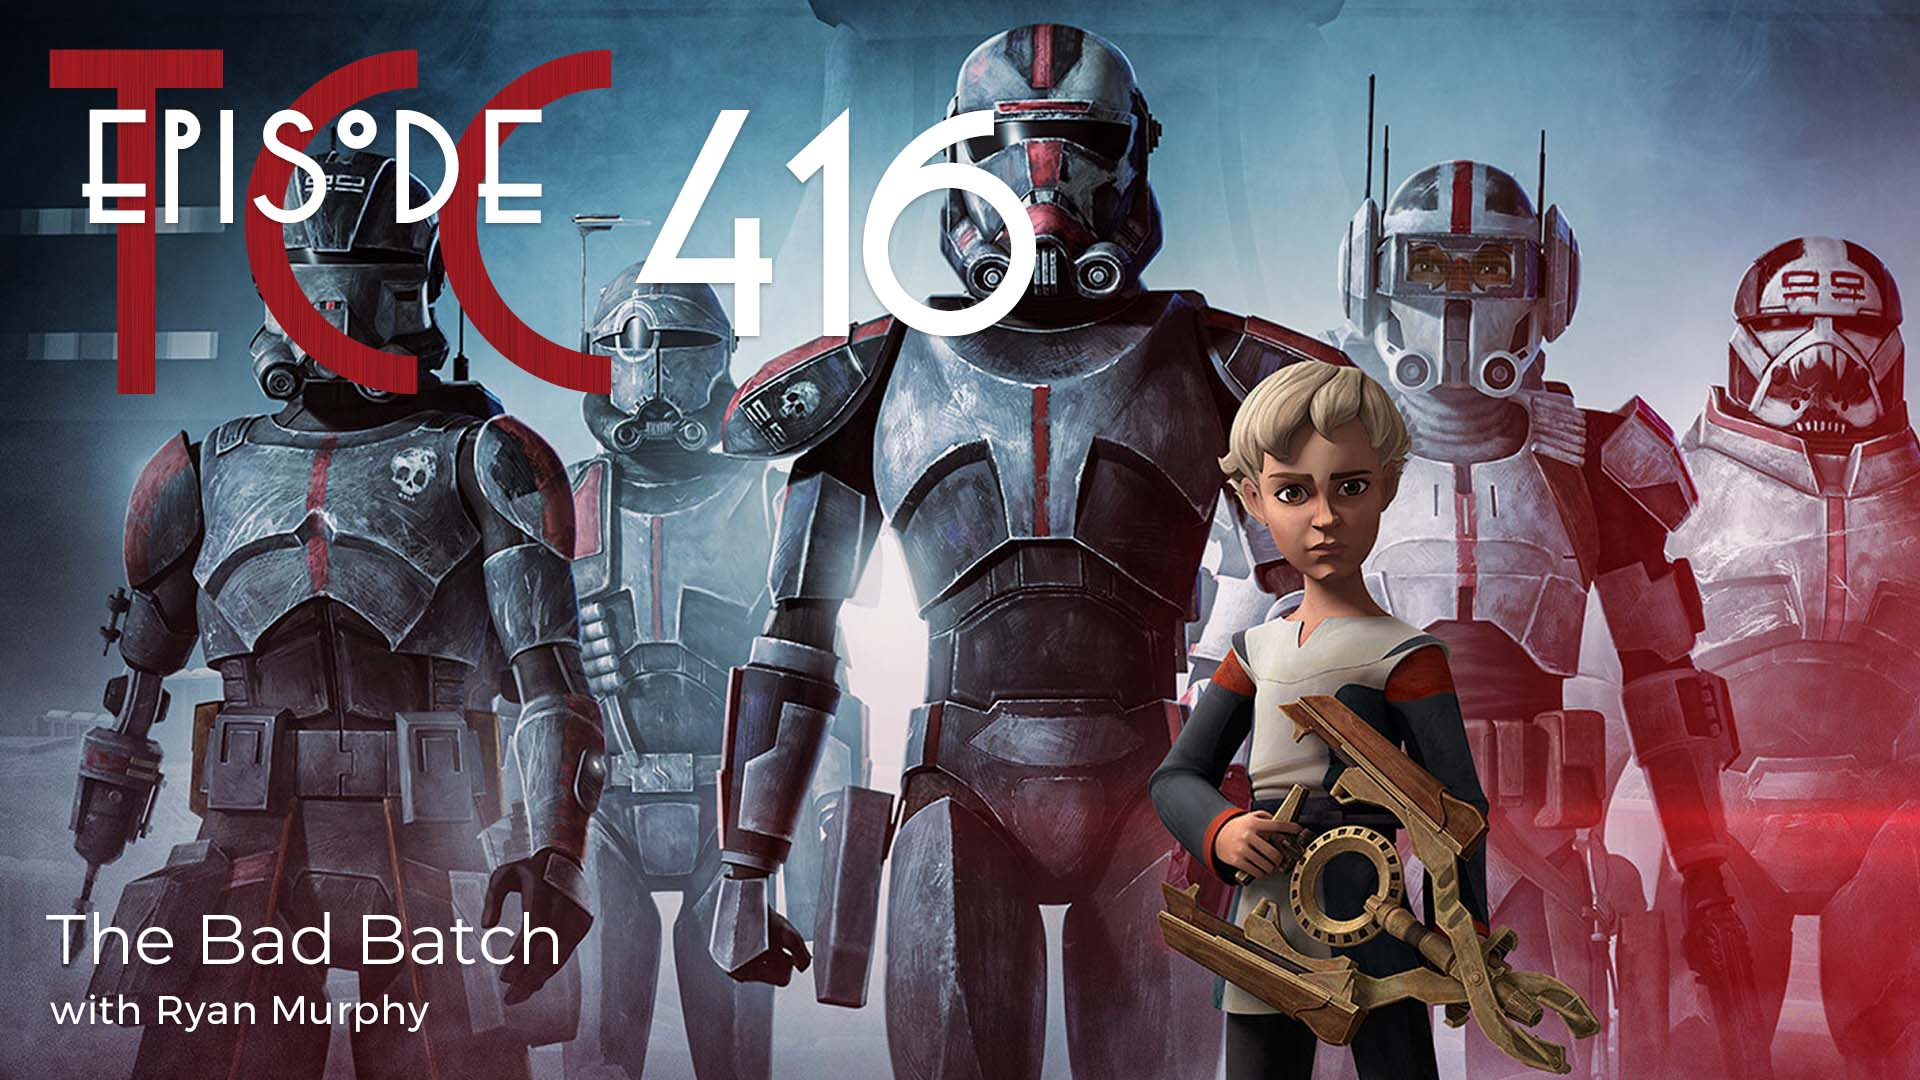 The Citadel Cafe 416: The Bad Batch